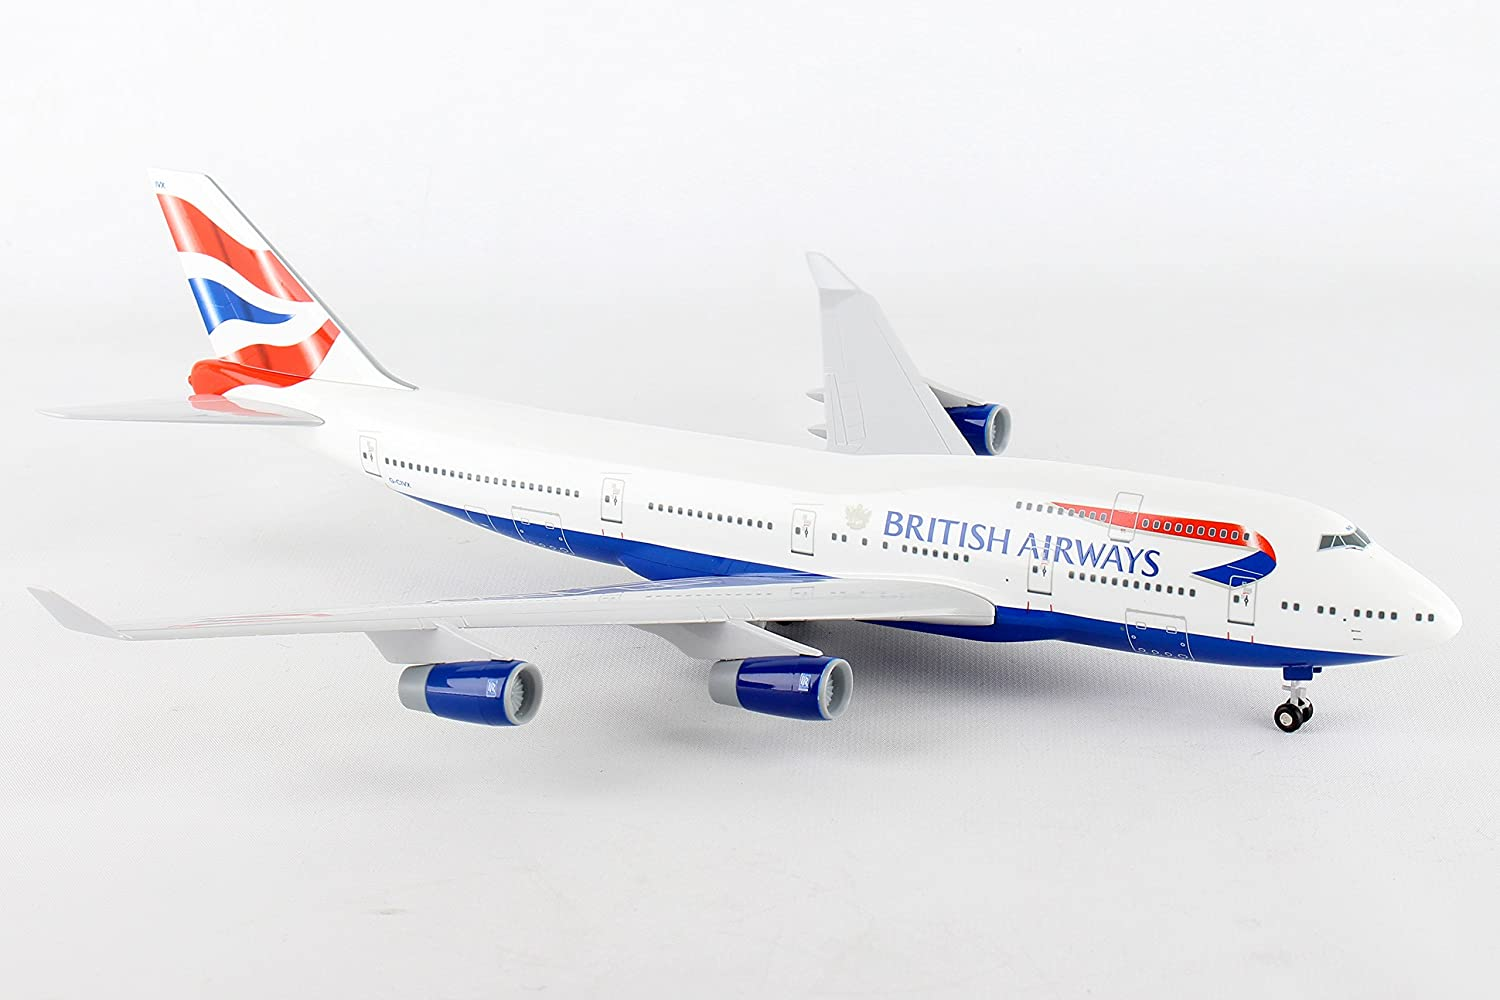 Skymarks skr304 British Airways B747 – 400 Unión cola plástico modelo